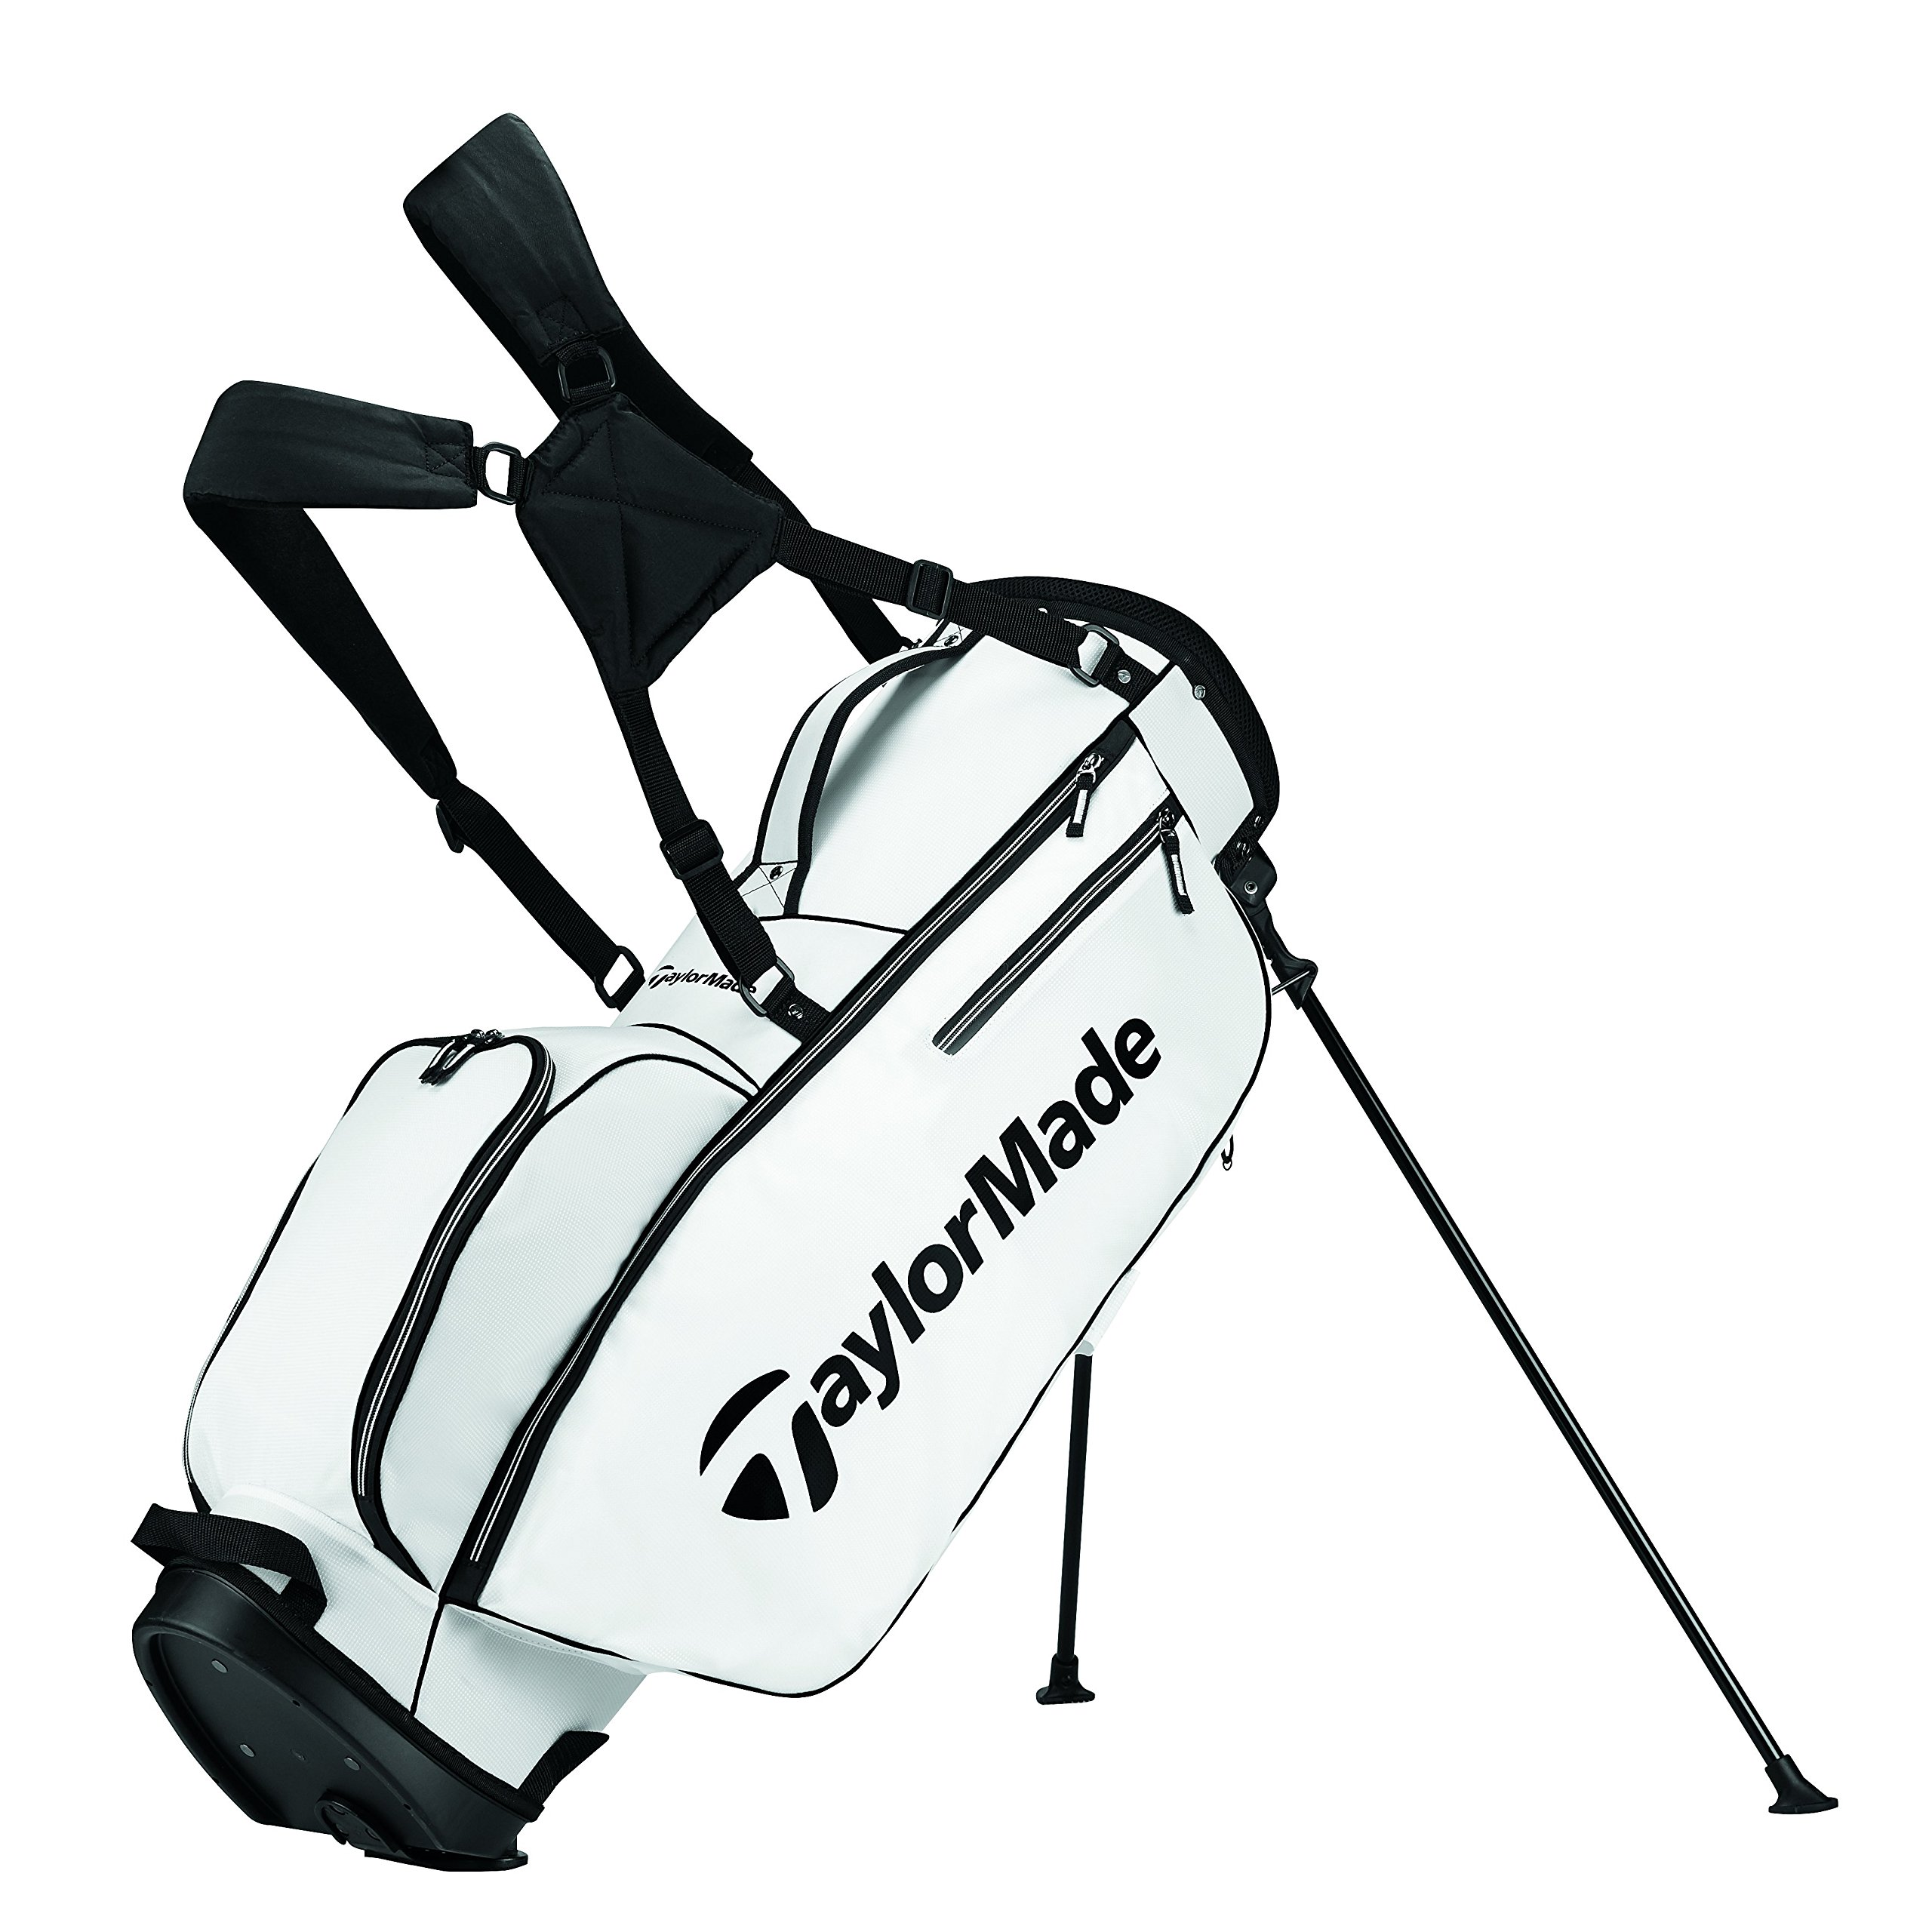 TaylorMade 2017 TM 5.0 Stand Golf Bag, White/Black by TaylorMade (Image #1)